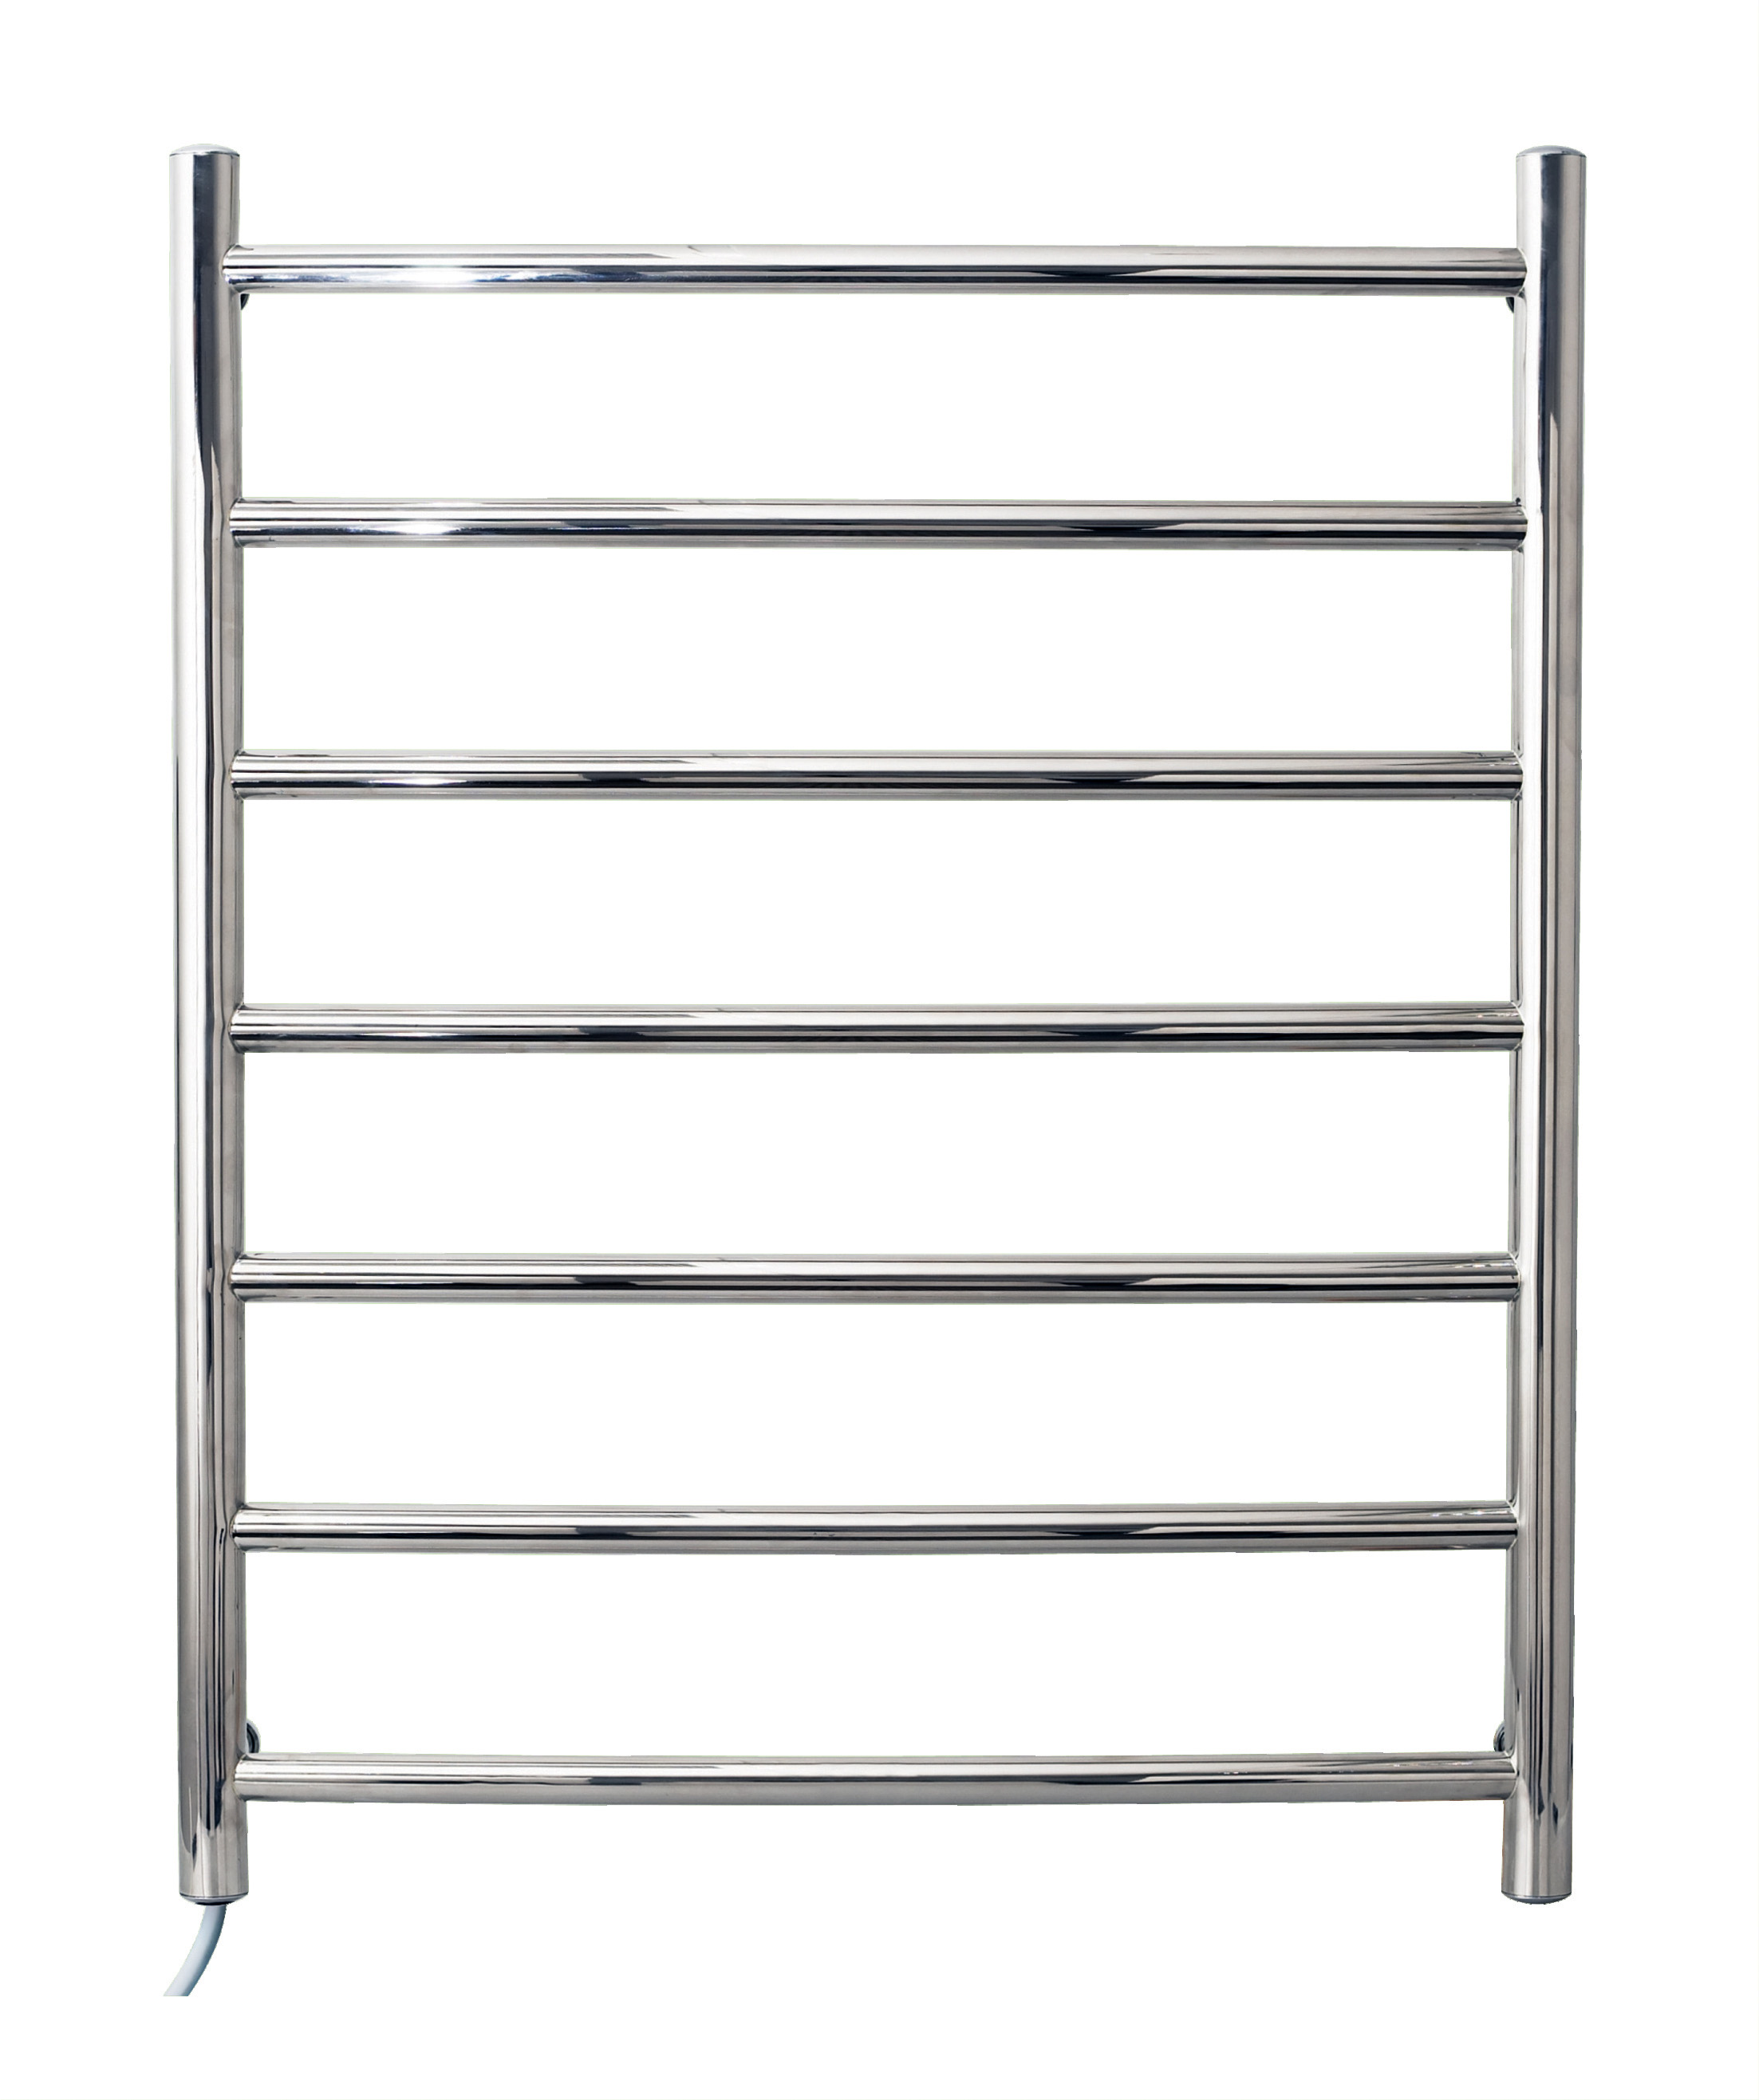 AZTEC 7 RUNG HEATED TOWEL RAIL